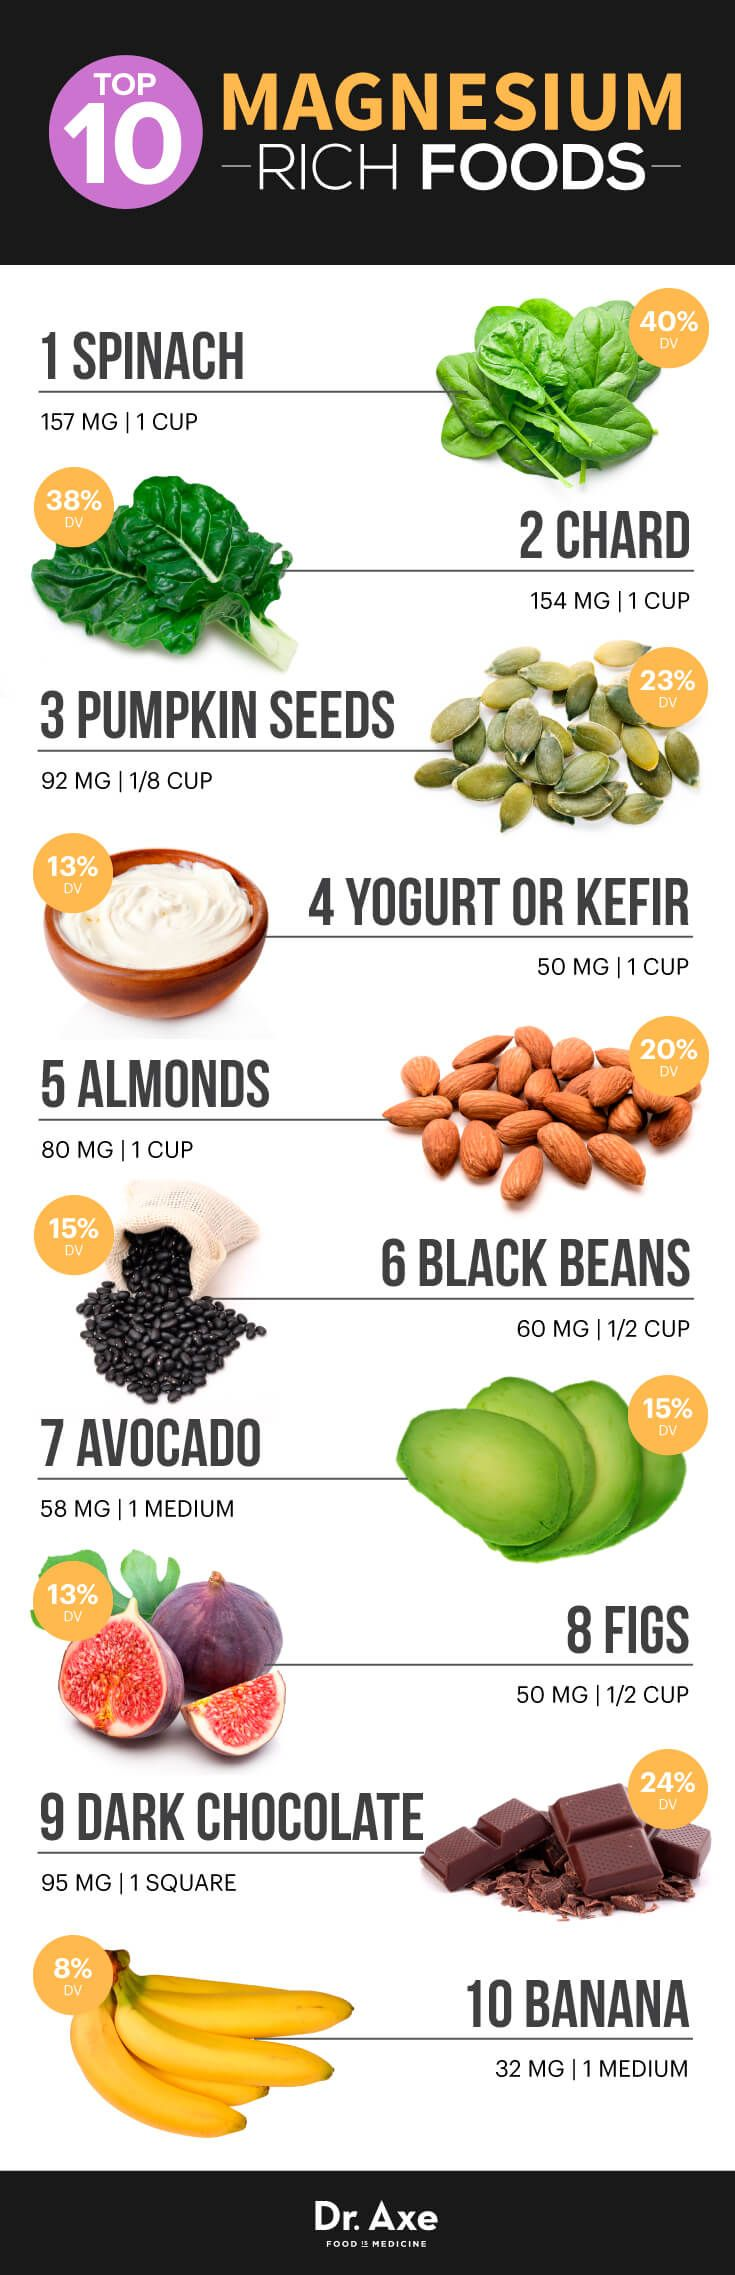 Magnesium-Rich Foods Plus Proven Benefits of Magnesium - Dr. Axe